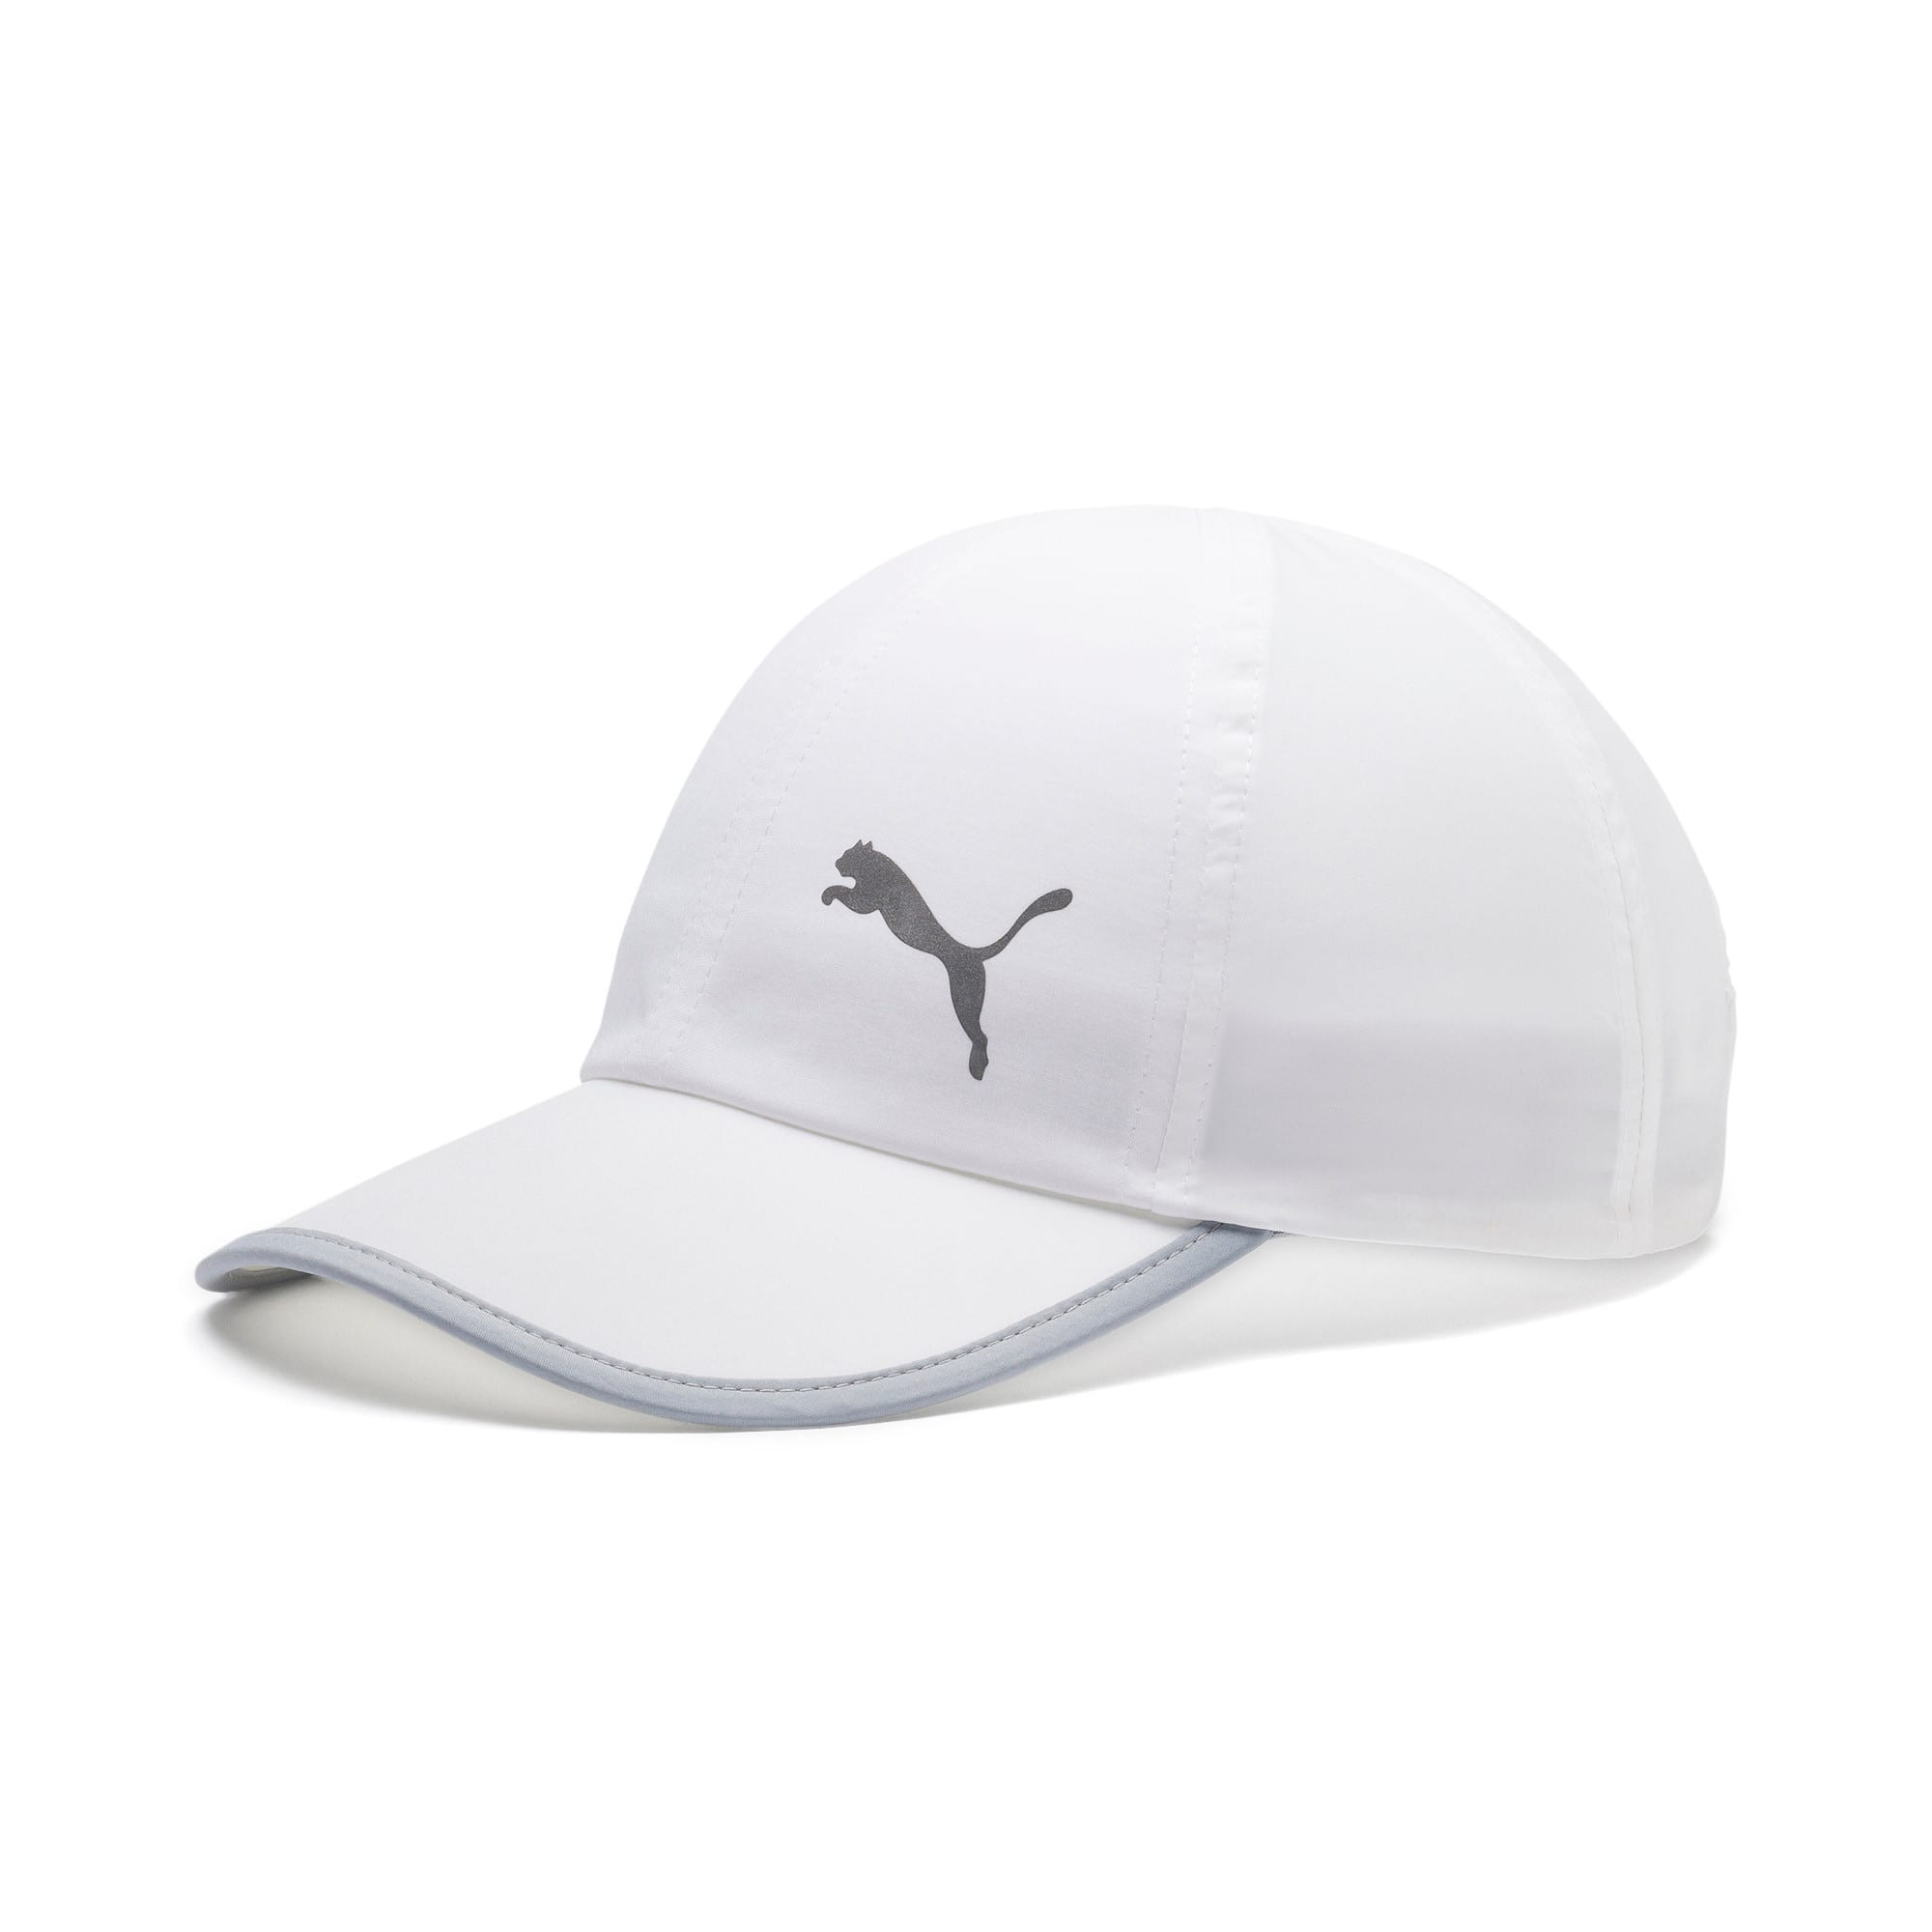 Thumbnail 1 of ESS Running Cap, Puma White-Cat, medium